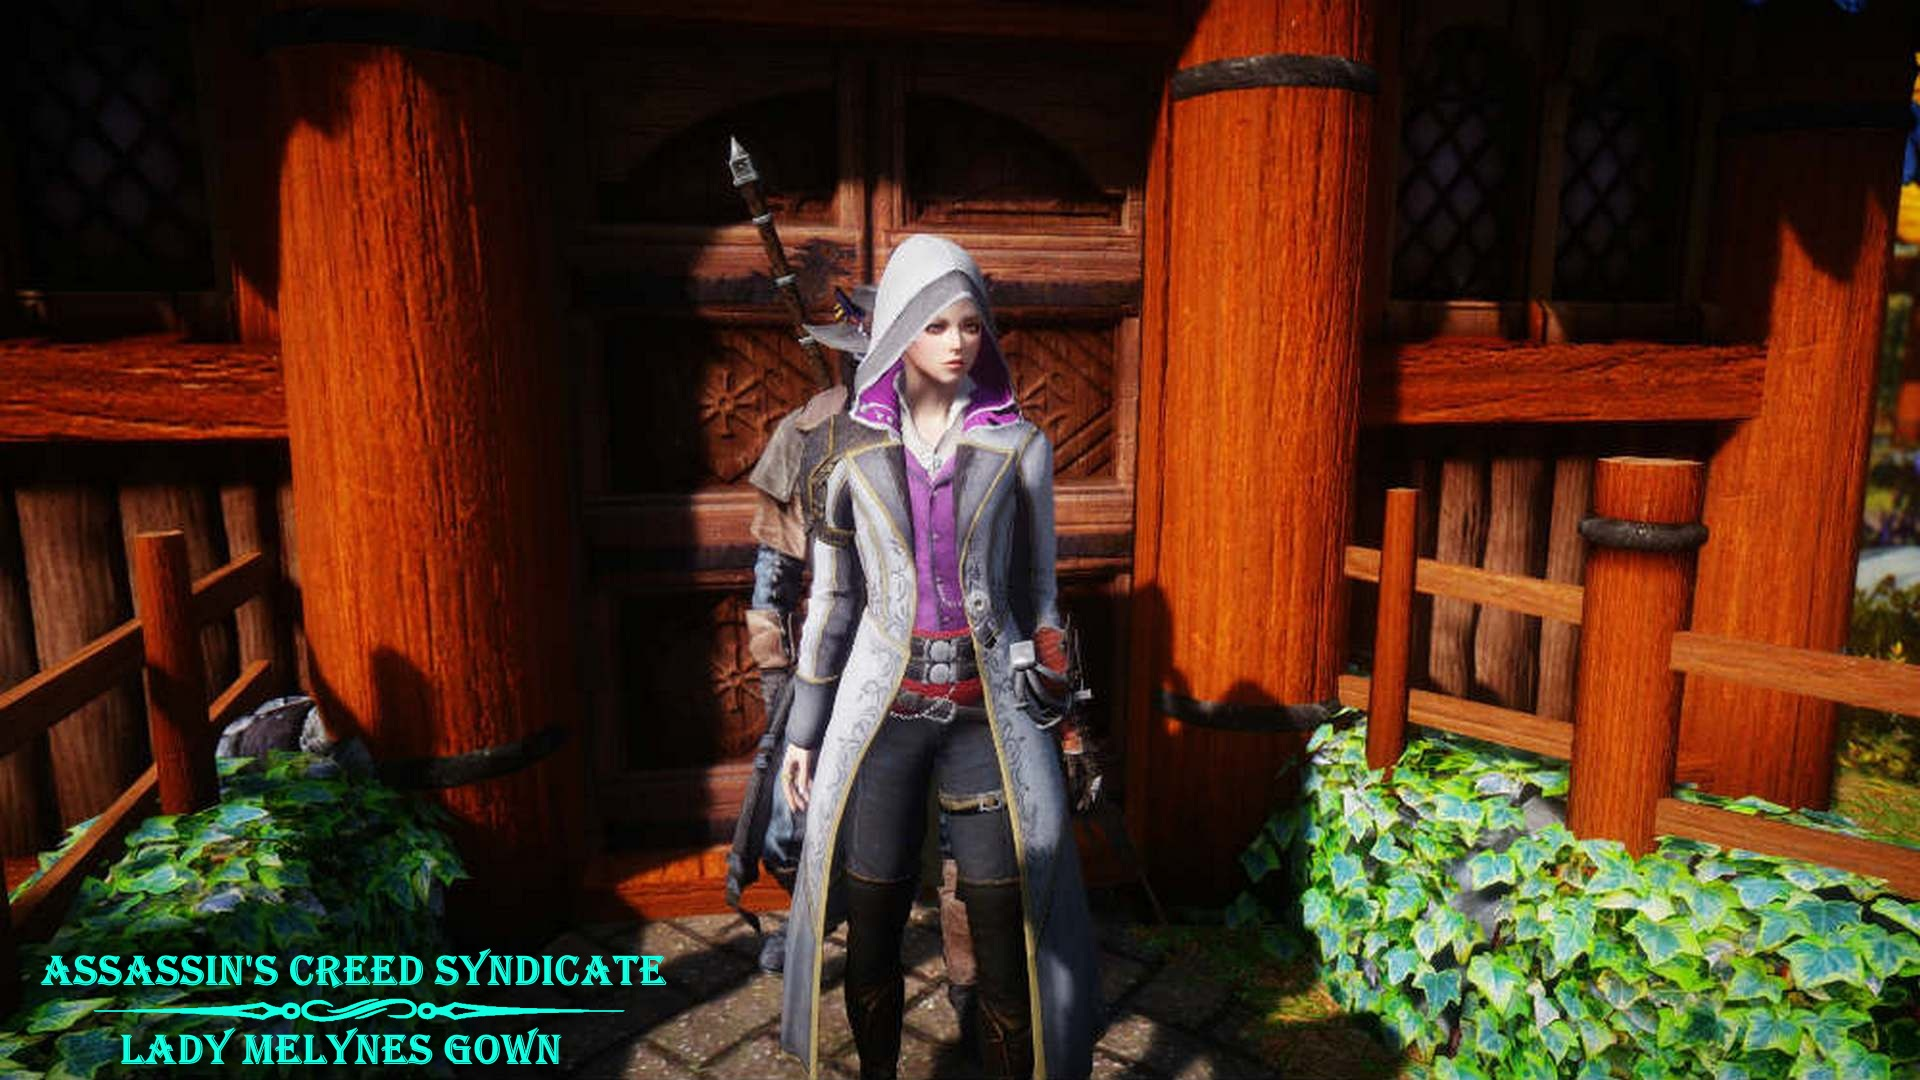 Assassin's_Creed_Syndicate_Lady_Melynes_Gown.jpg